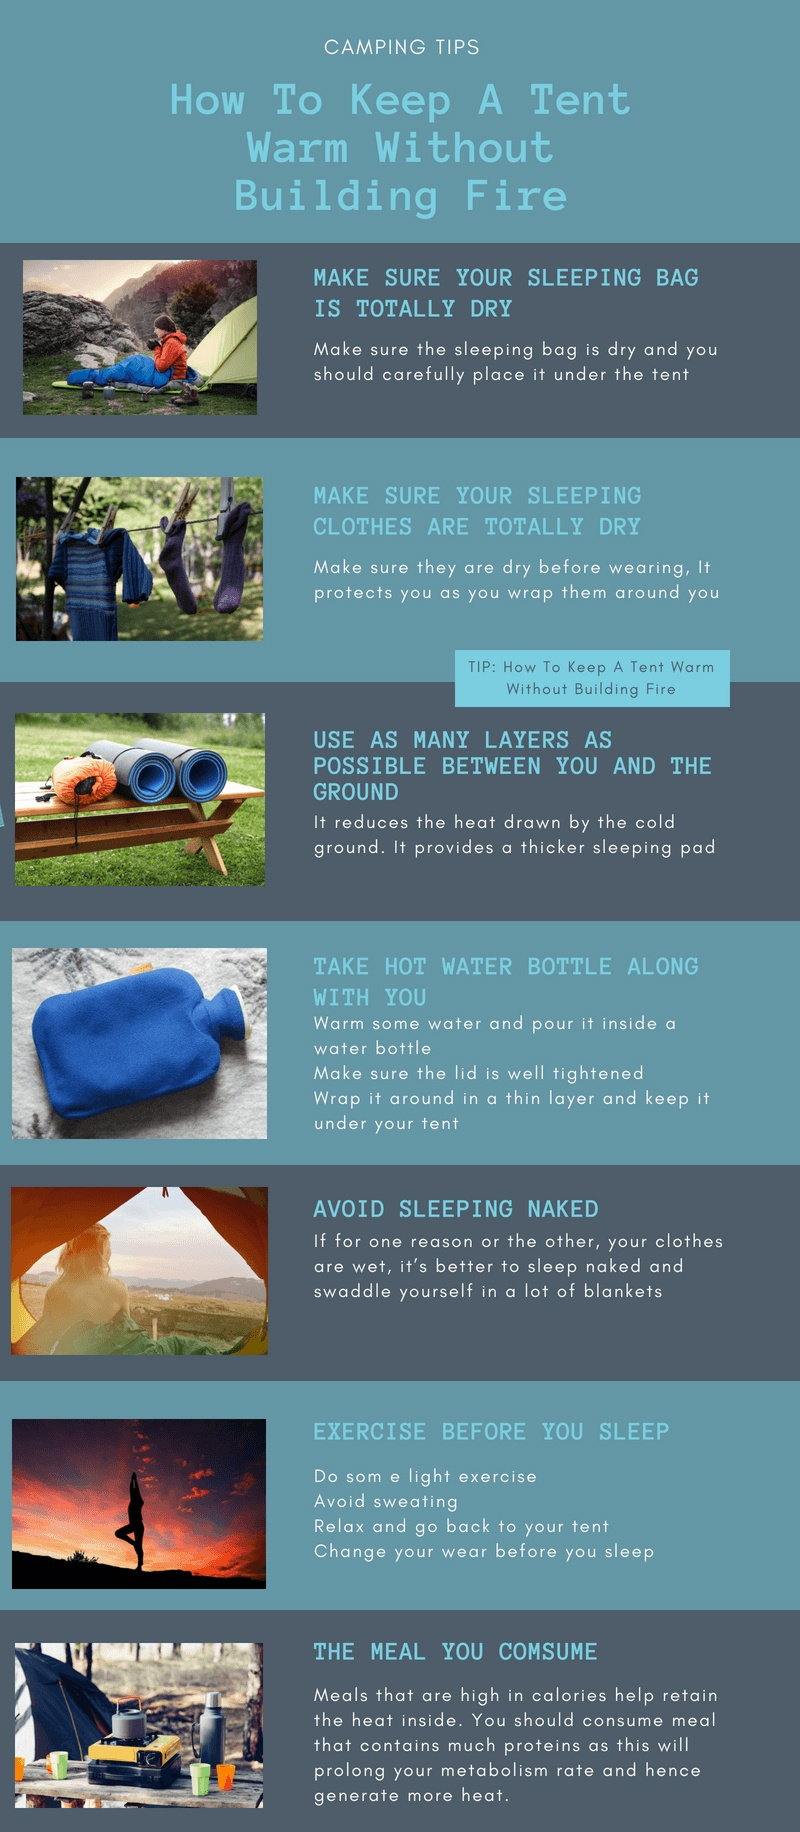 How to Keep a Tent Warm and Cozy, Without Fire - Infographic